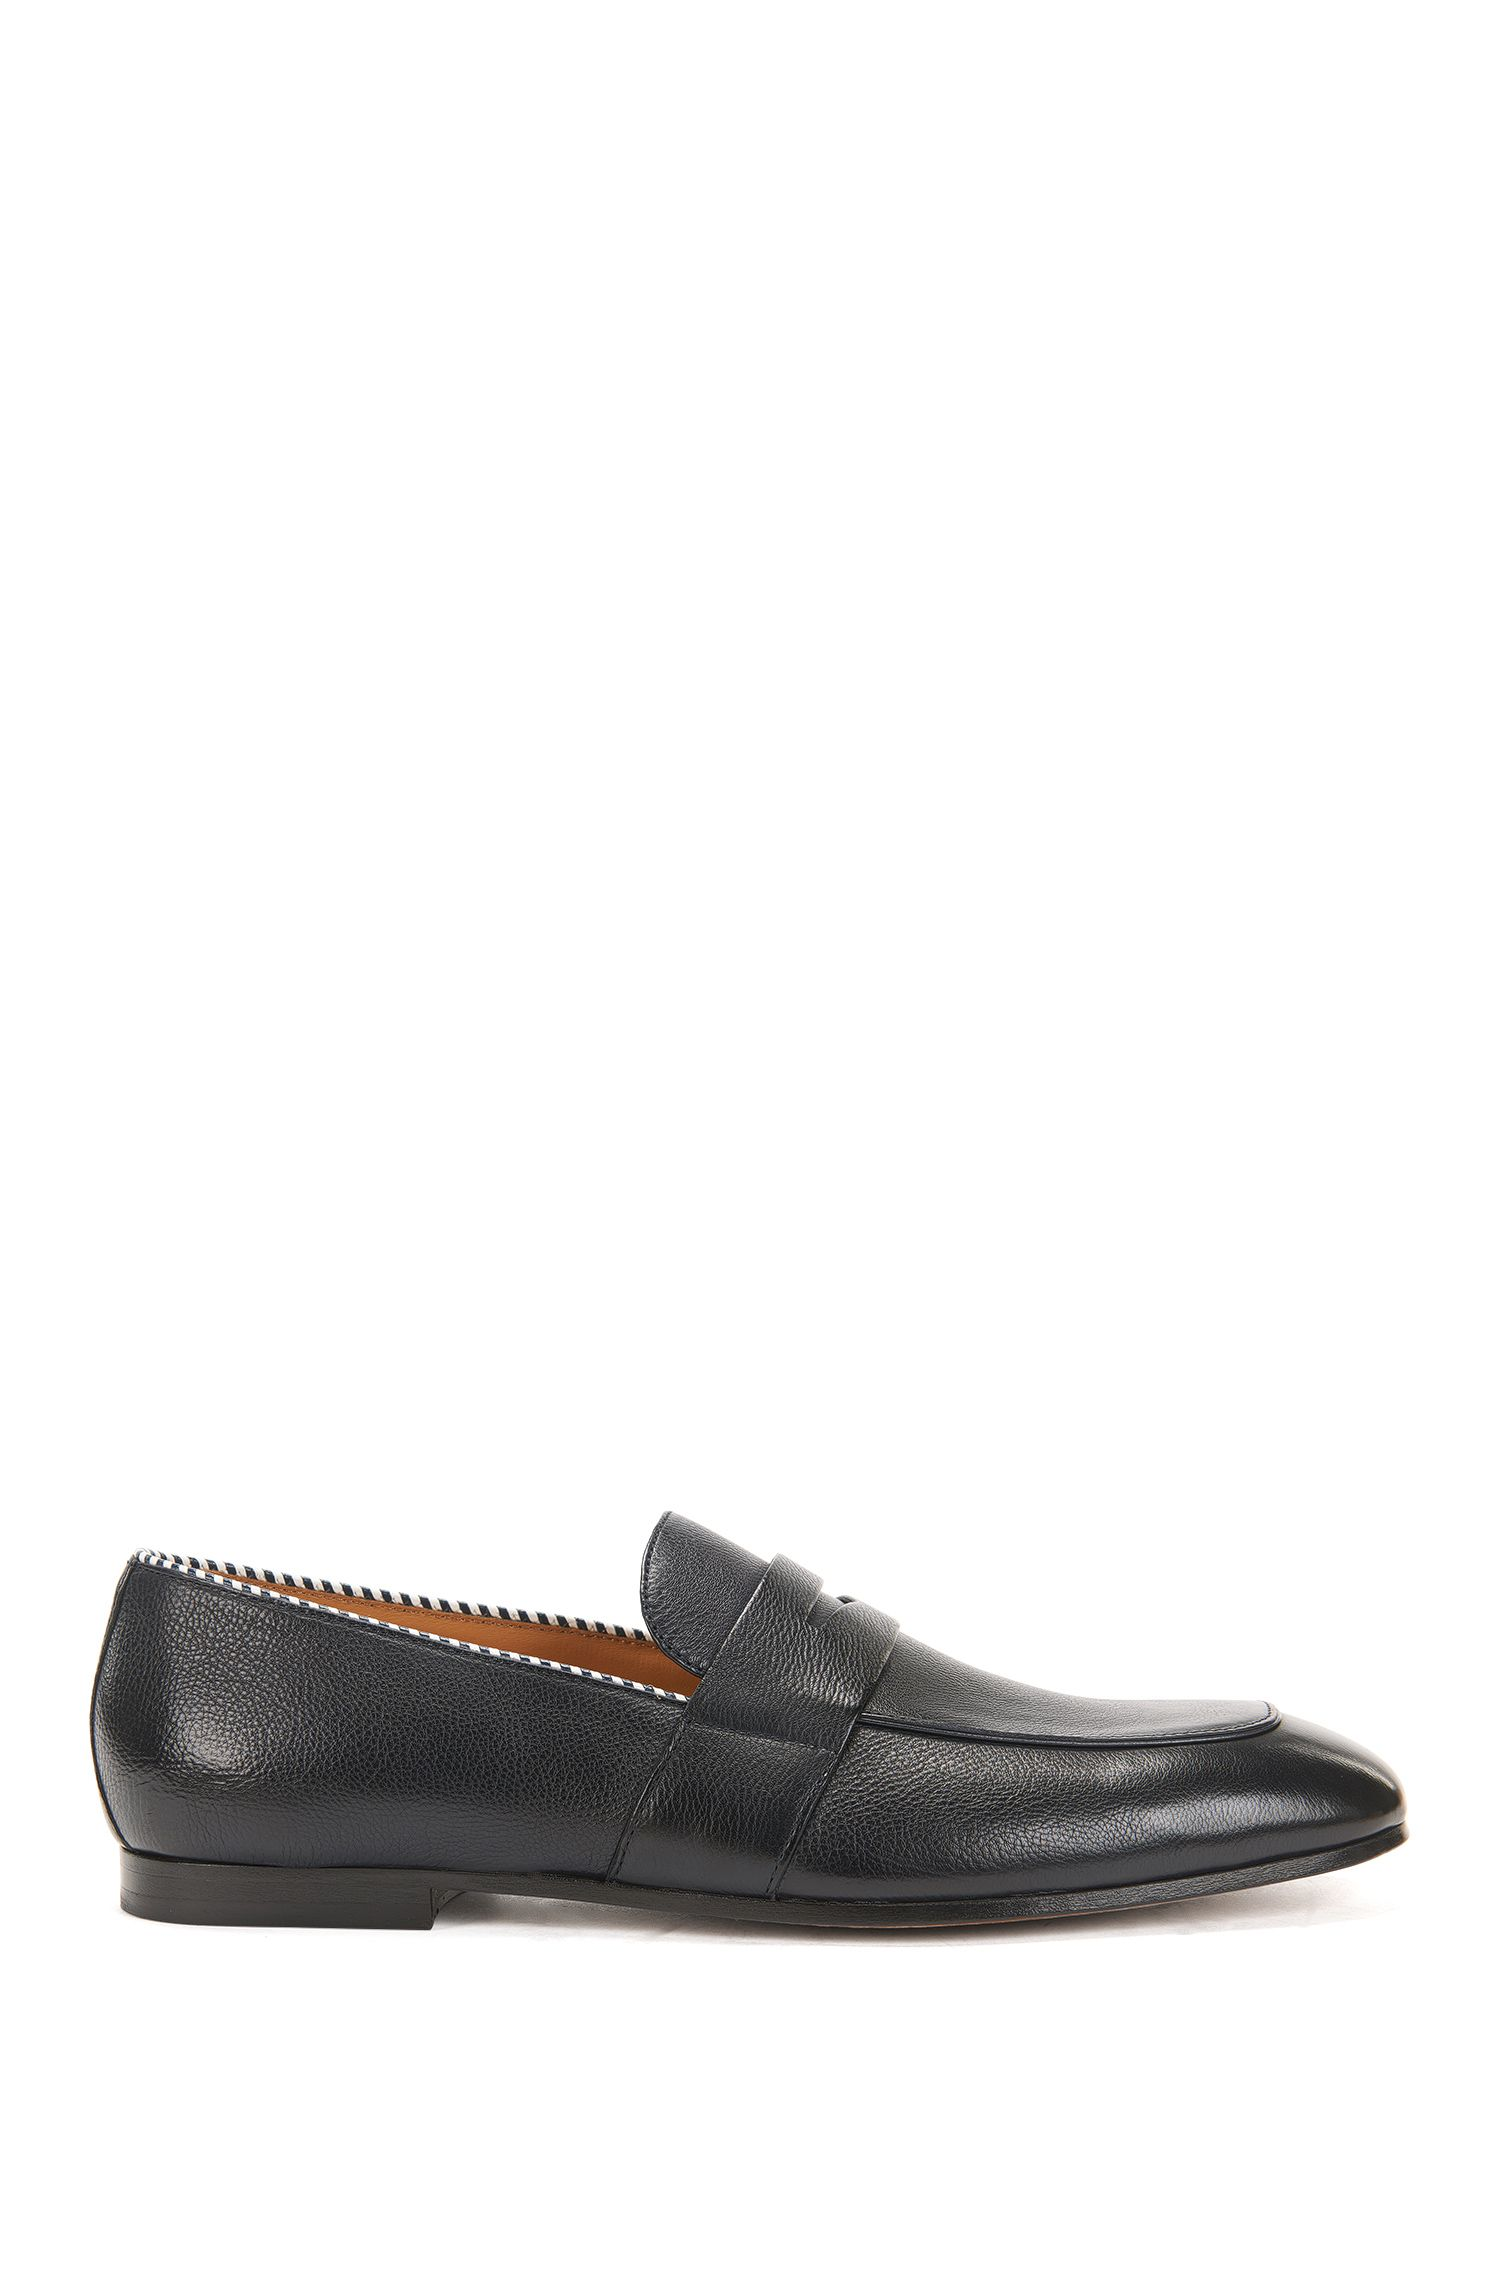 Penny loafers in vegetable-tanned grainy leather